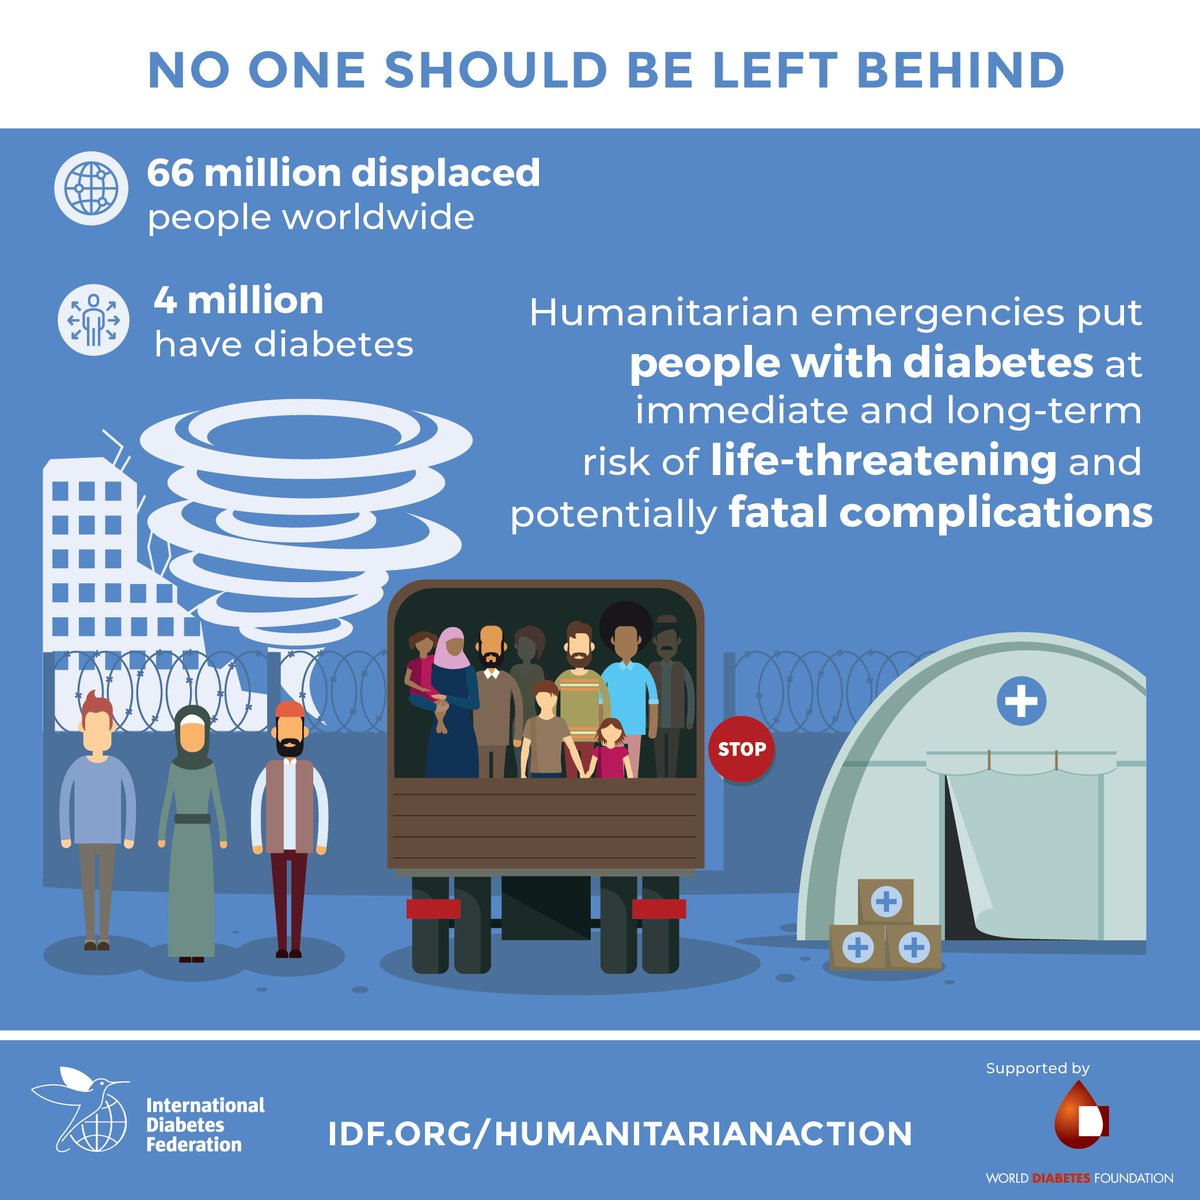 test Twitter Media - No one should be left behind. Learn more about the new IDF initiative with @WorldDiabetesF, @WHO, @UNRWA and @ICRC to improve #diabetes care for #displaced people in #humanitarian settings.  https://t.co/wpmspsL7ze https://t.co/pqQ9ZJBF4j